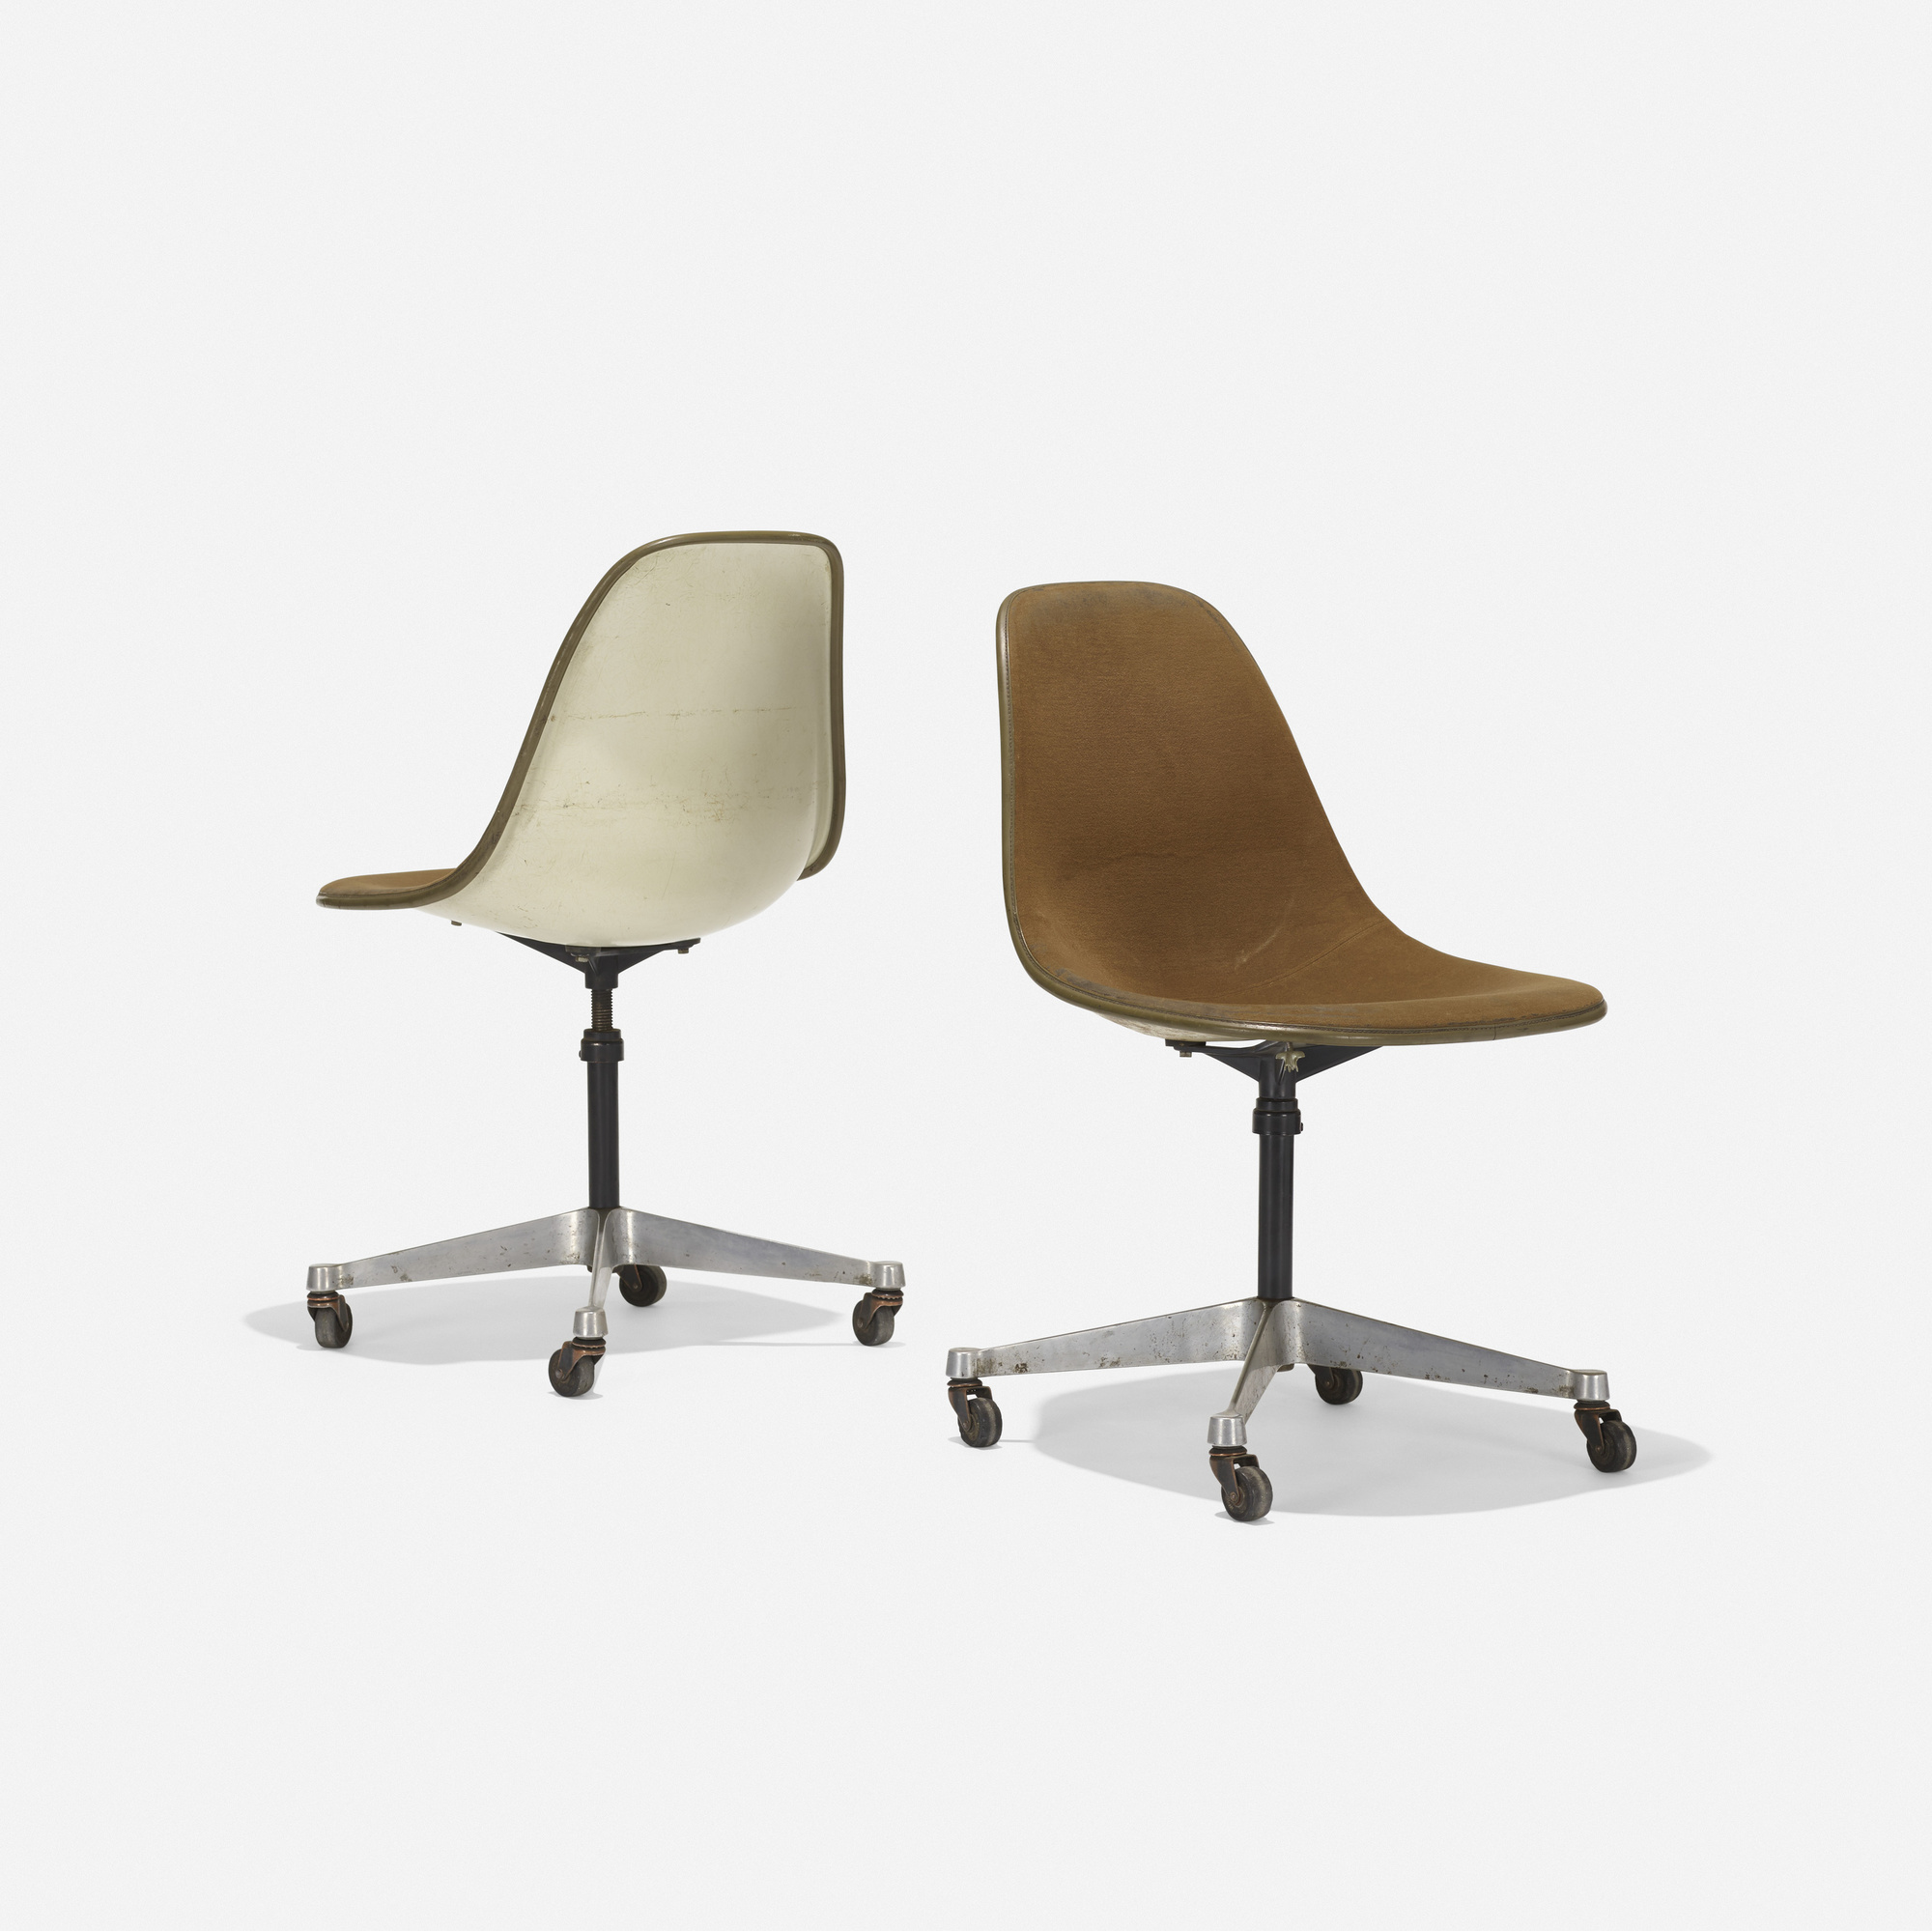 229: Charles and Ray Eames / PSCAs, pair (1 of 2)